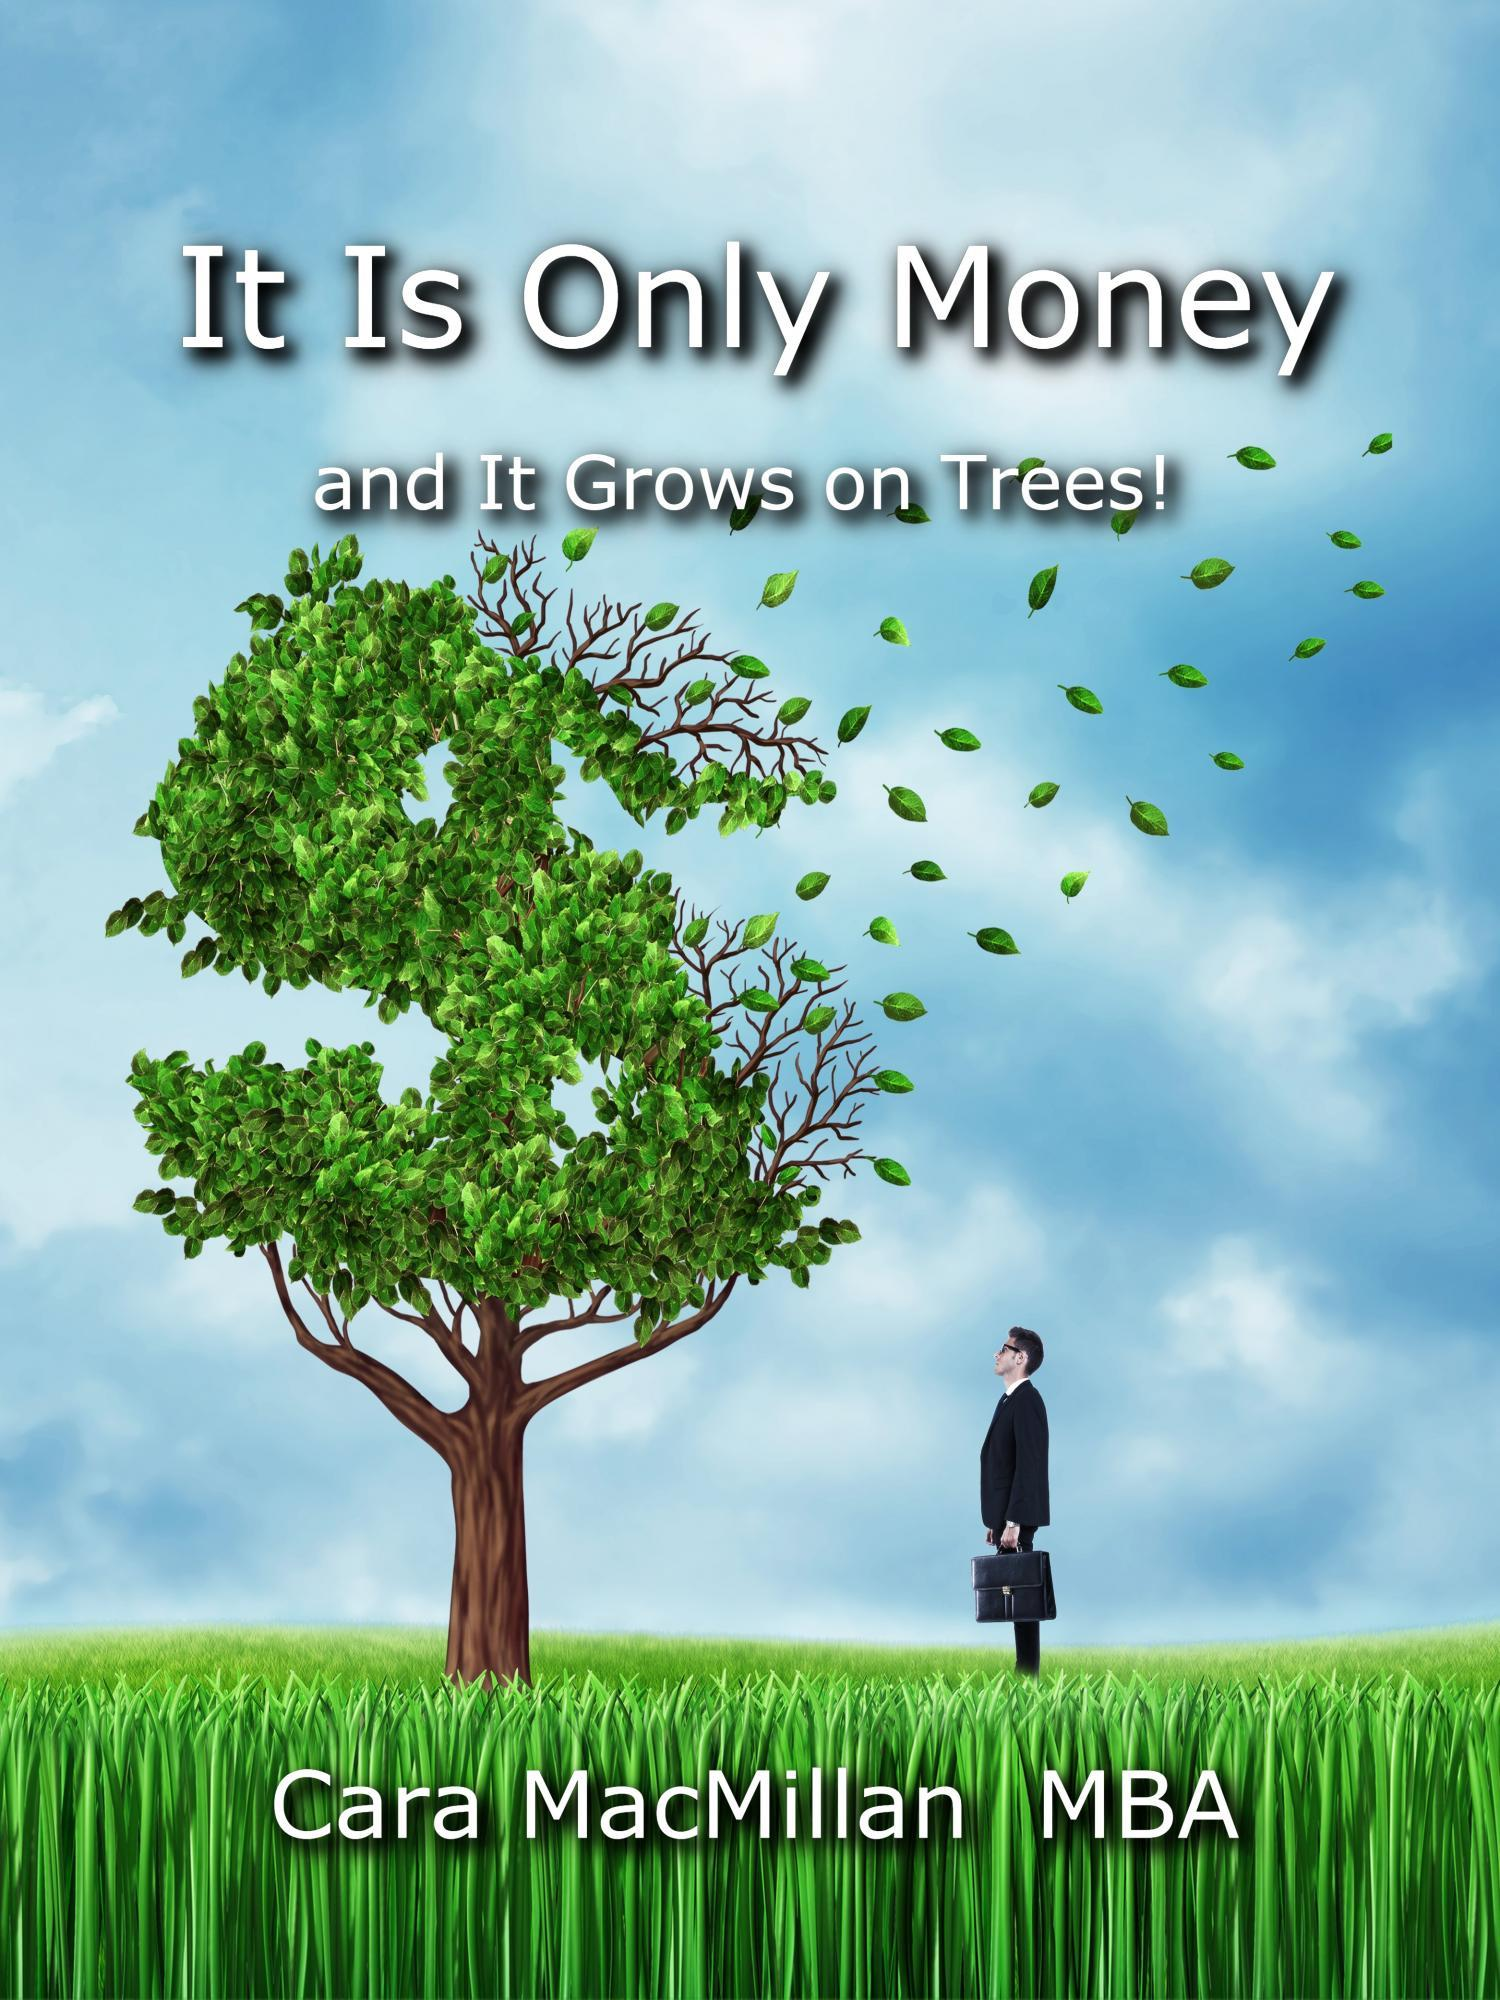 It Is Only Money- And It Grows on Trees! Cara MacMillan